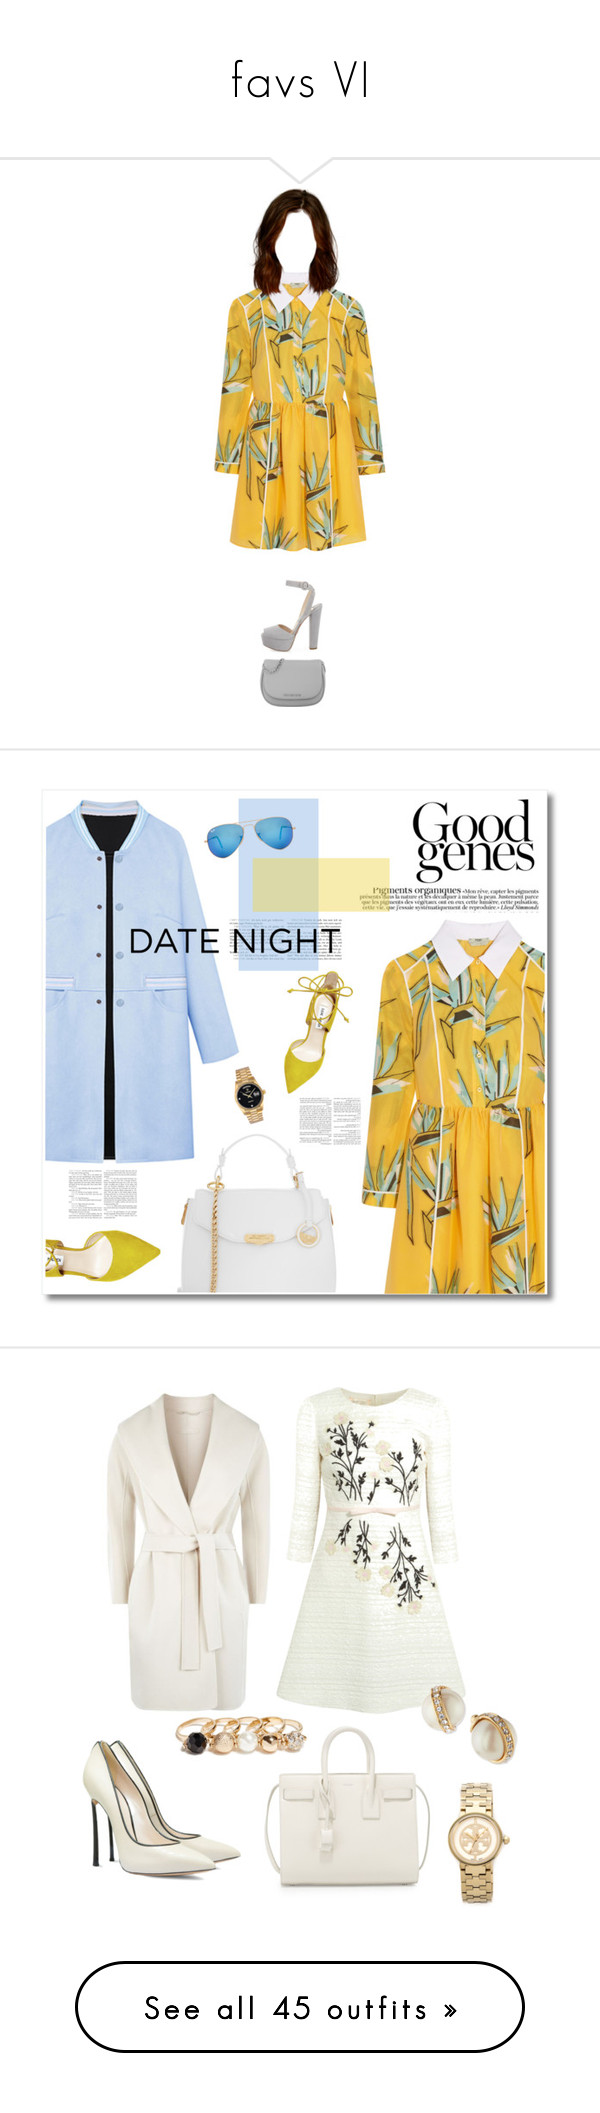 """""""favs VI"""" by imsobeatles ❤ liked on Polyvore featuring Prada, Fendi, Michael Kors, Versace, WithChic, Steve Madden, Ray-Ban, Rolex, DateNight and 60secondstyle"""